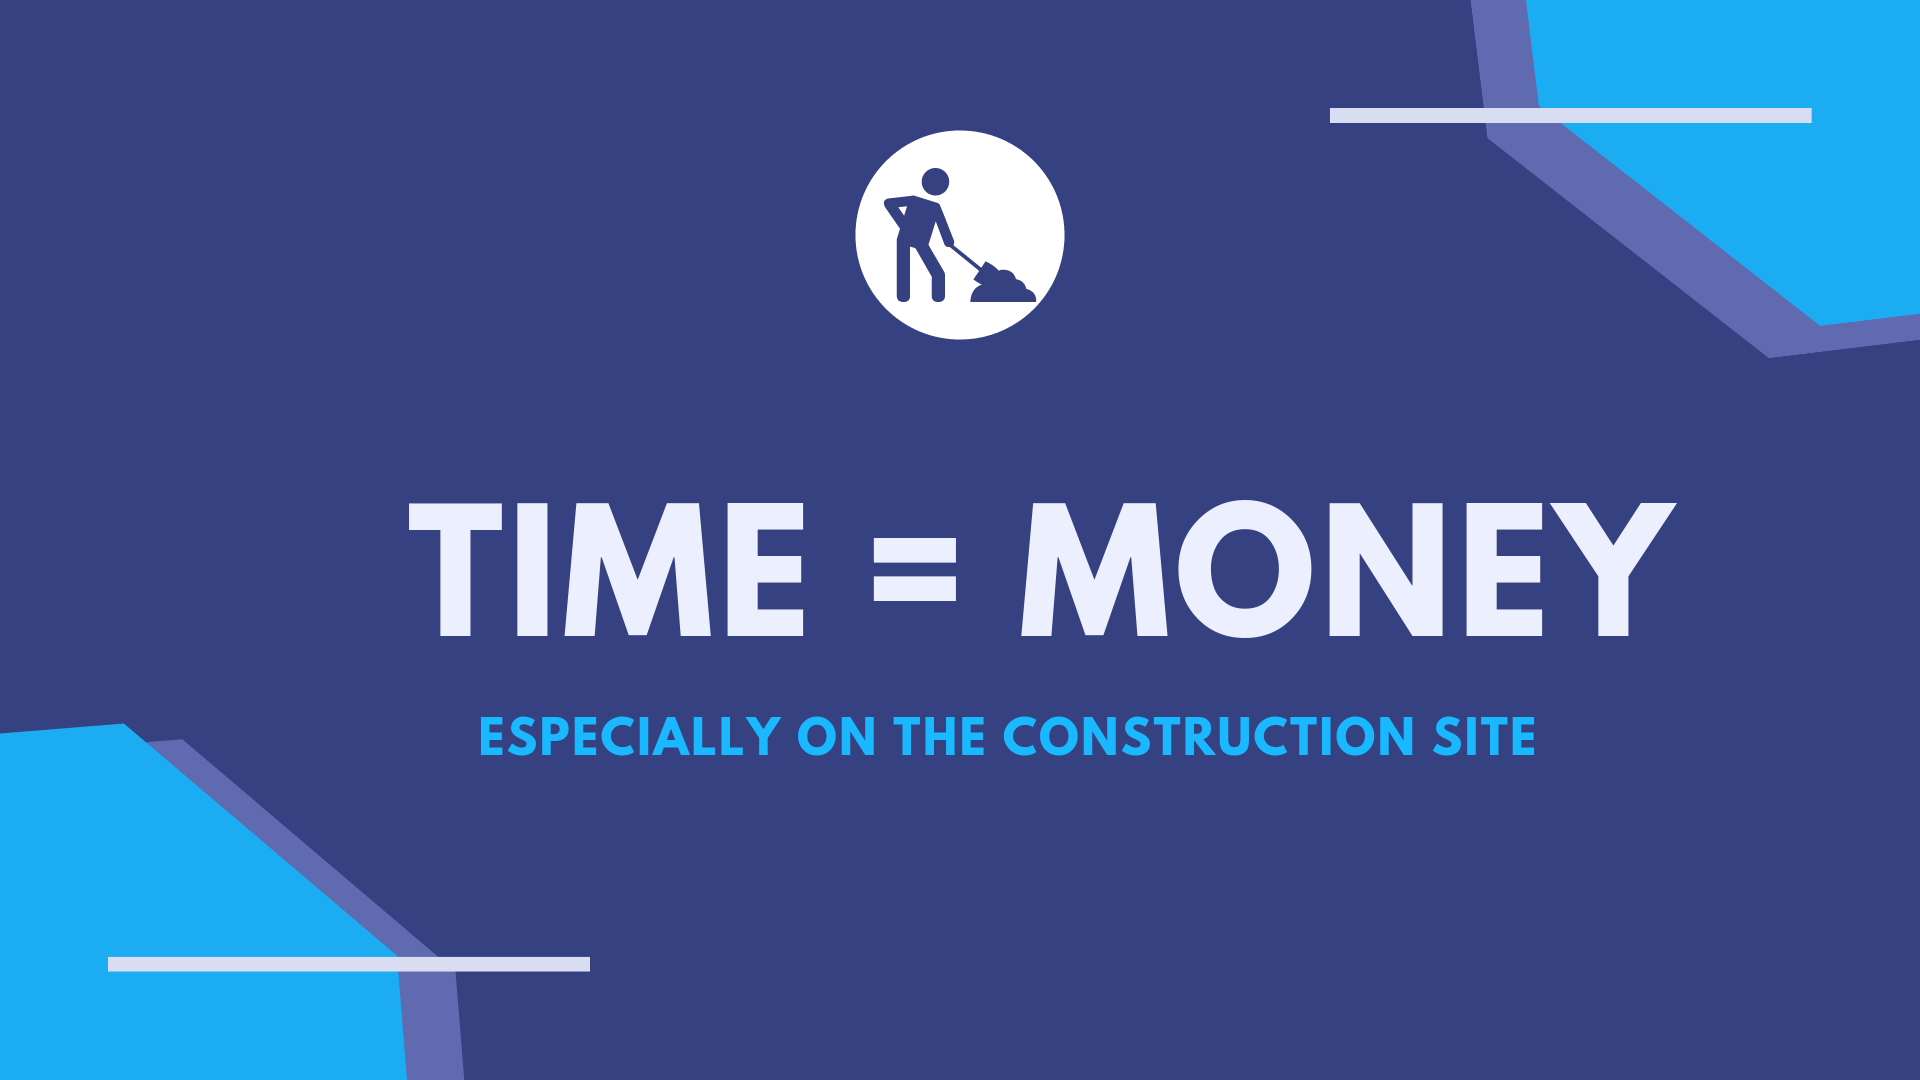 Time = Money especially on the construction site | ArchiSnapper Blog